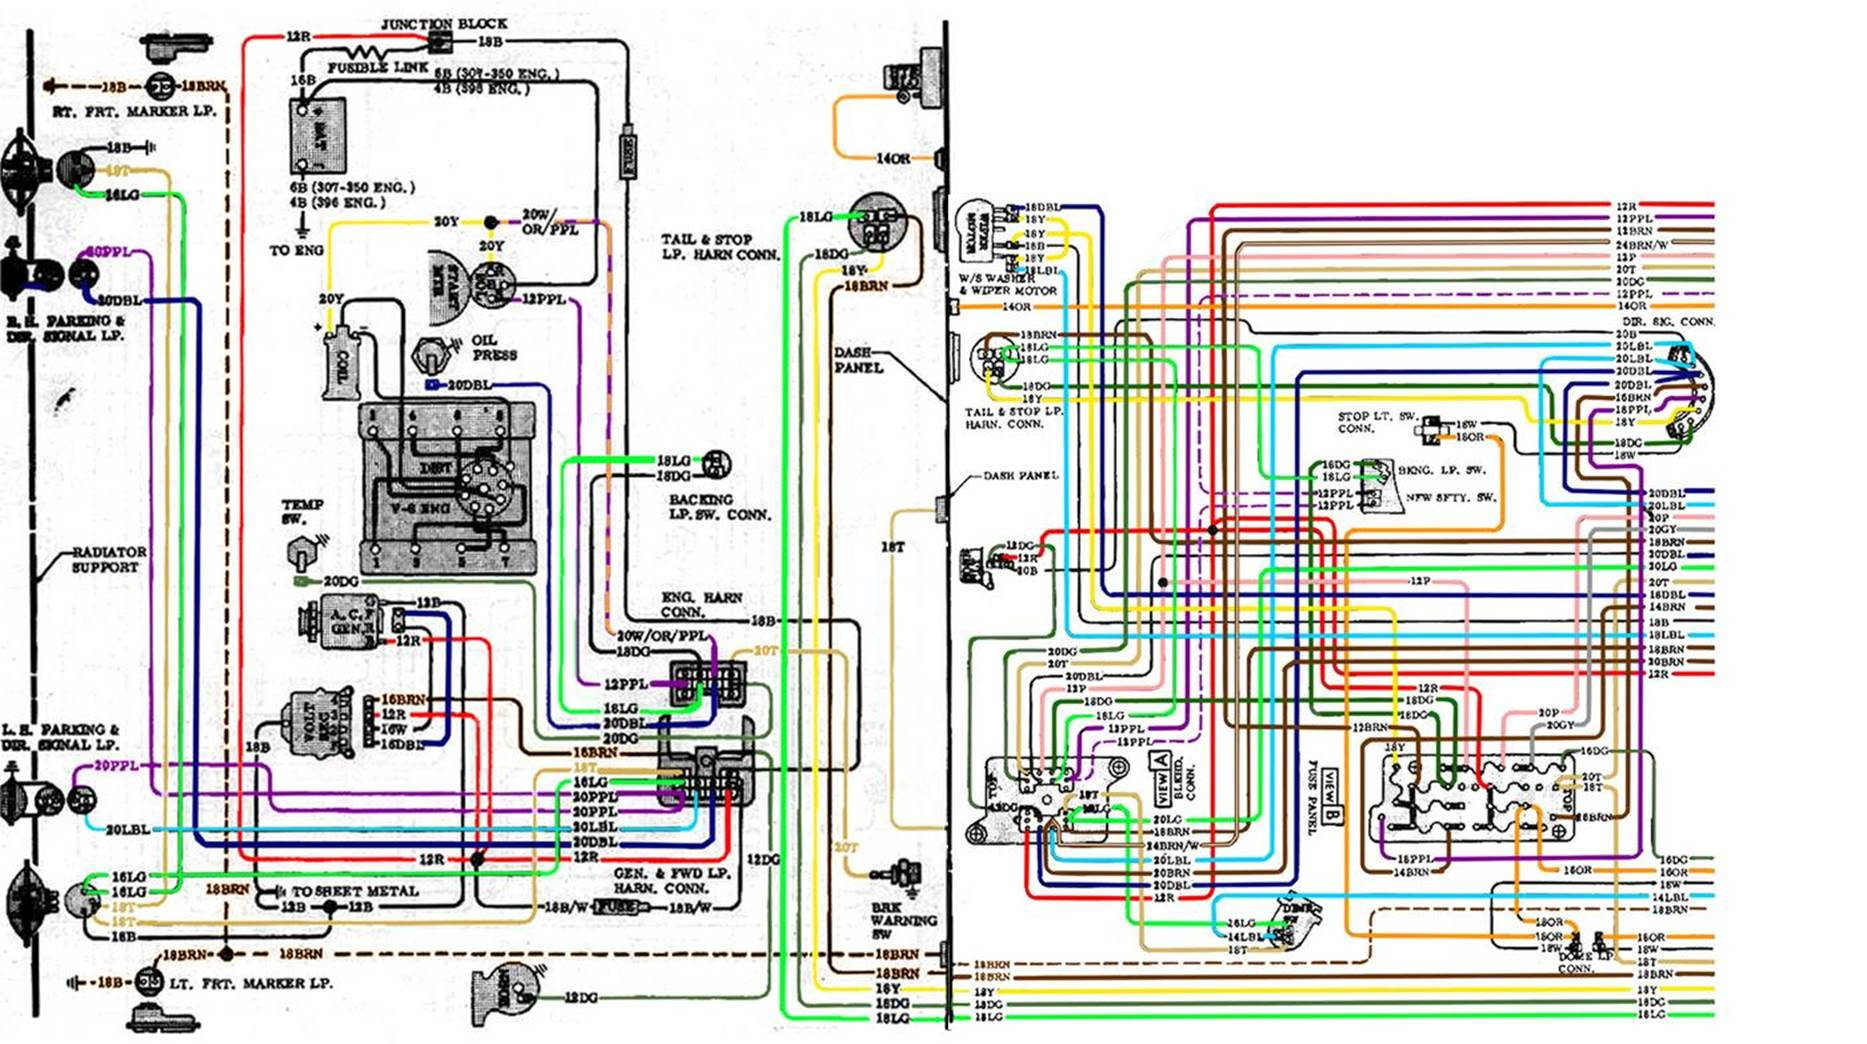 image002 67 72 chevy wiring diagram 1972 chevy impala wiring diagram at webbmarketing.co